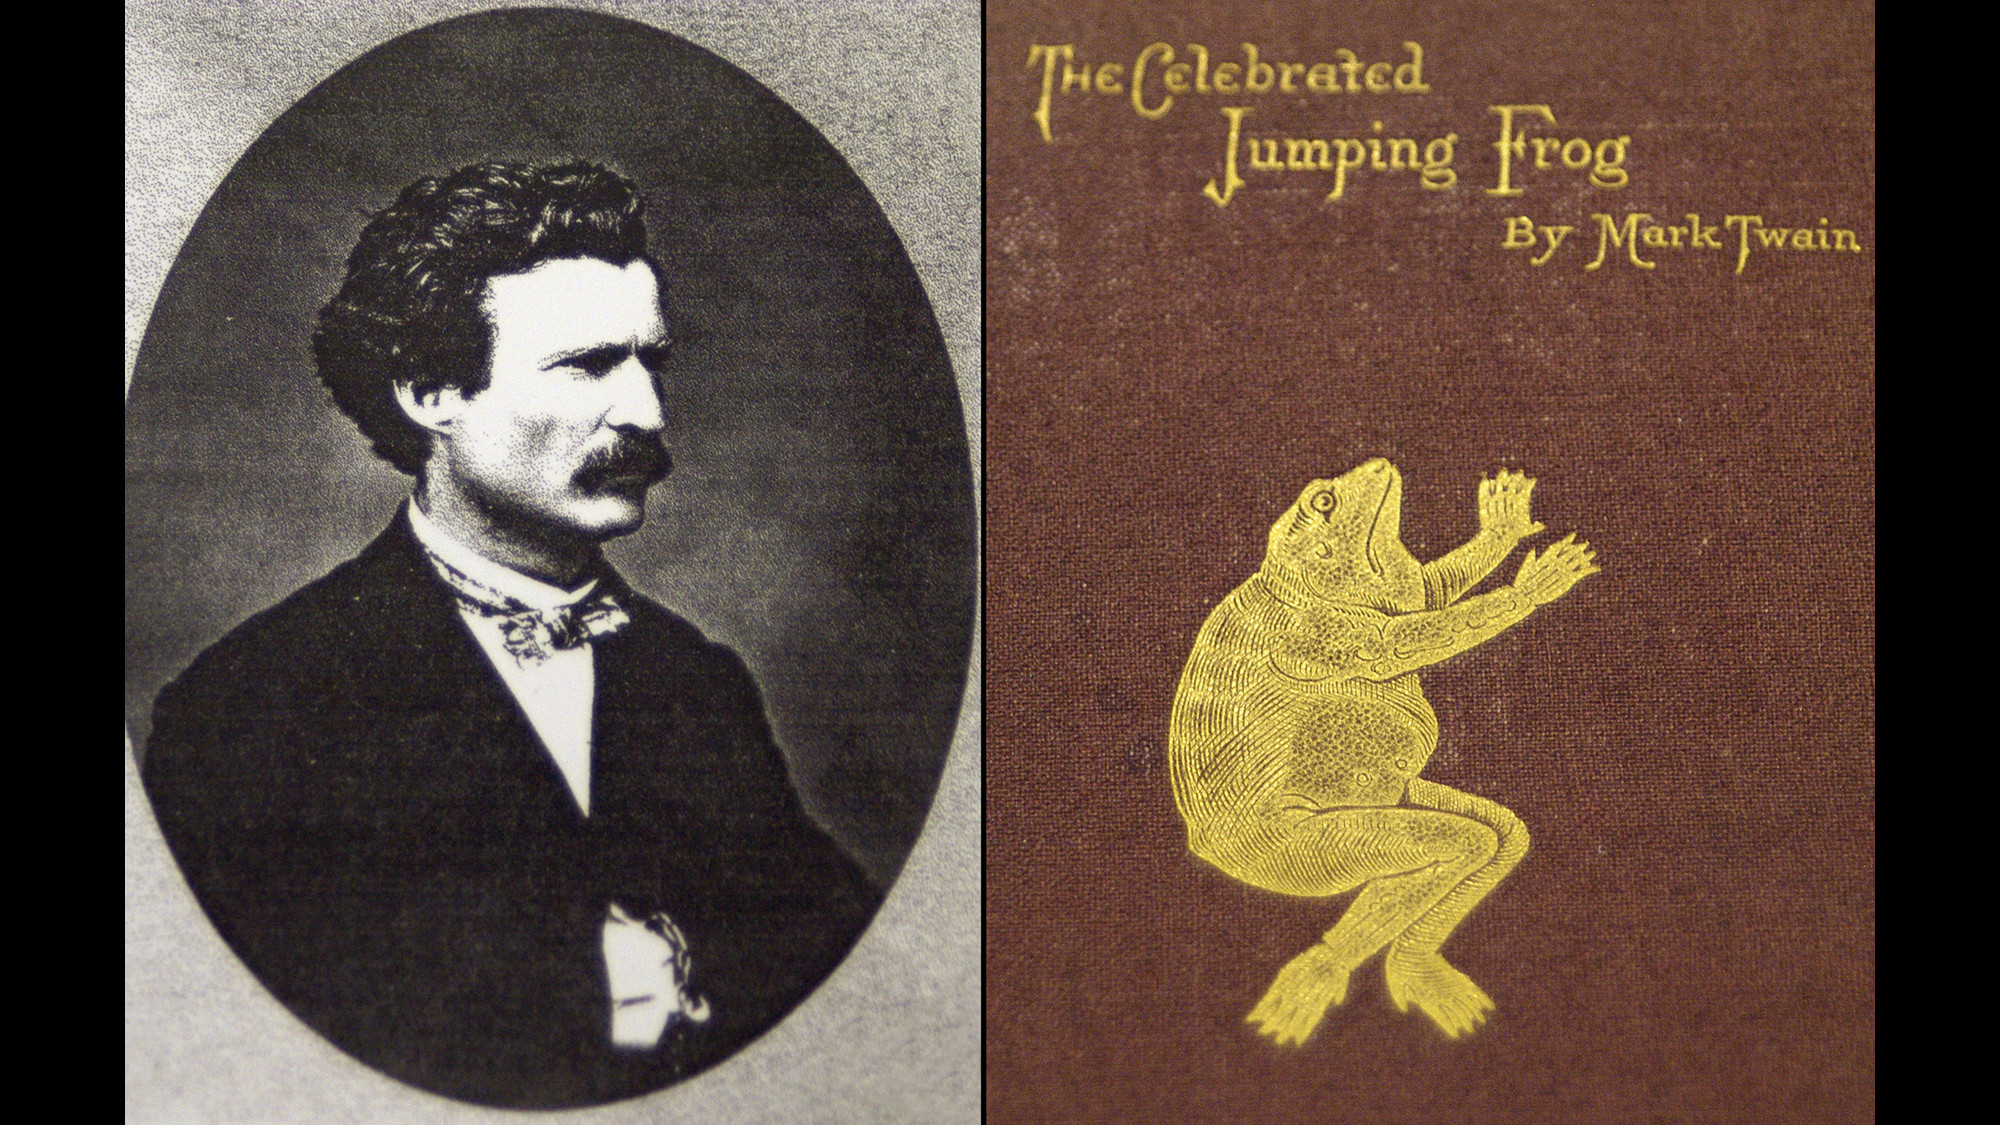 The frog that jump-started Mark Twain's career